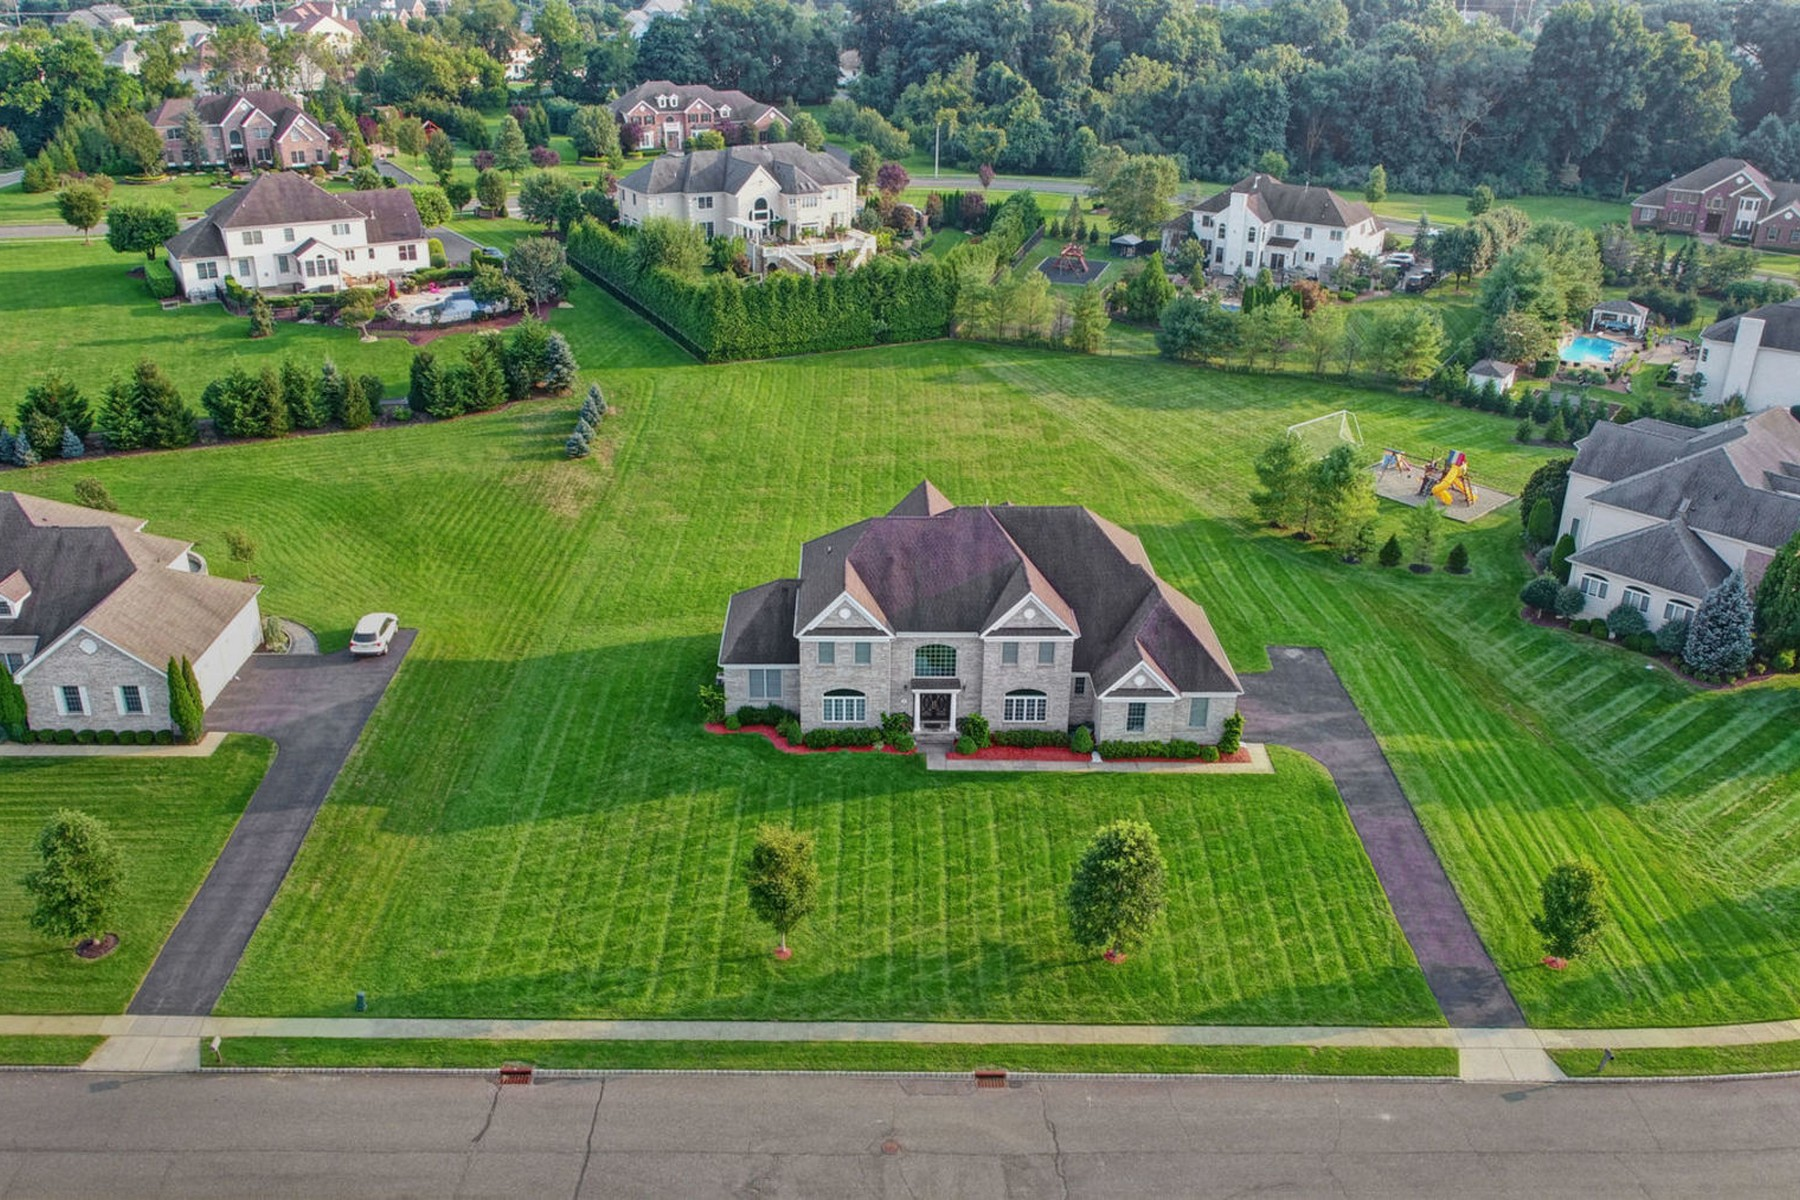 Single Family Homes for Sale at Spacious Colonial in the Saxon Estates 7 Saxon Court Freehold, New Jersey 07728 United States